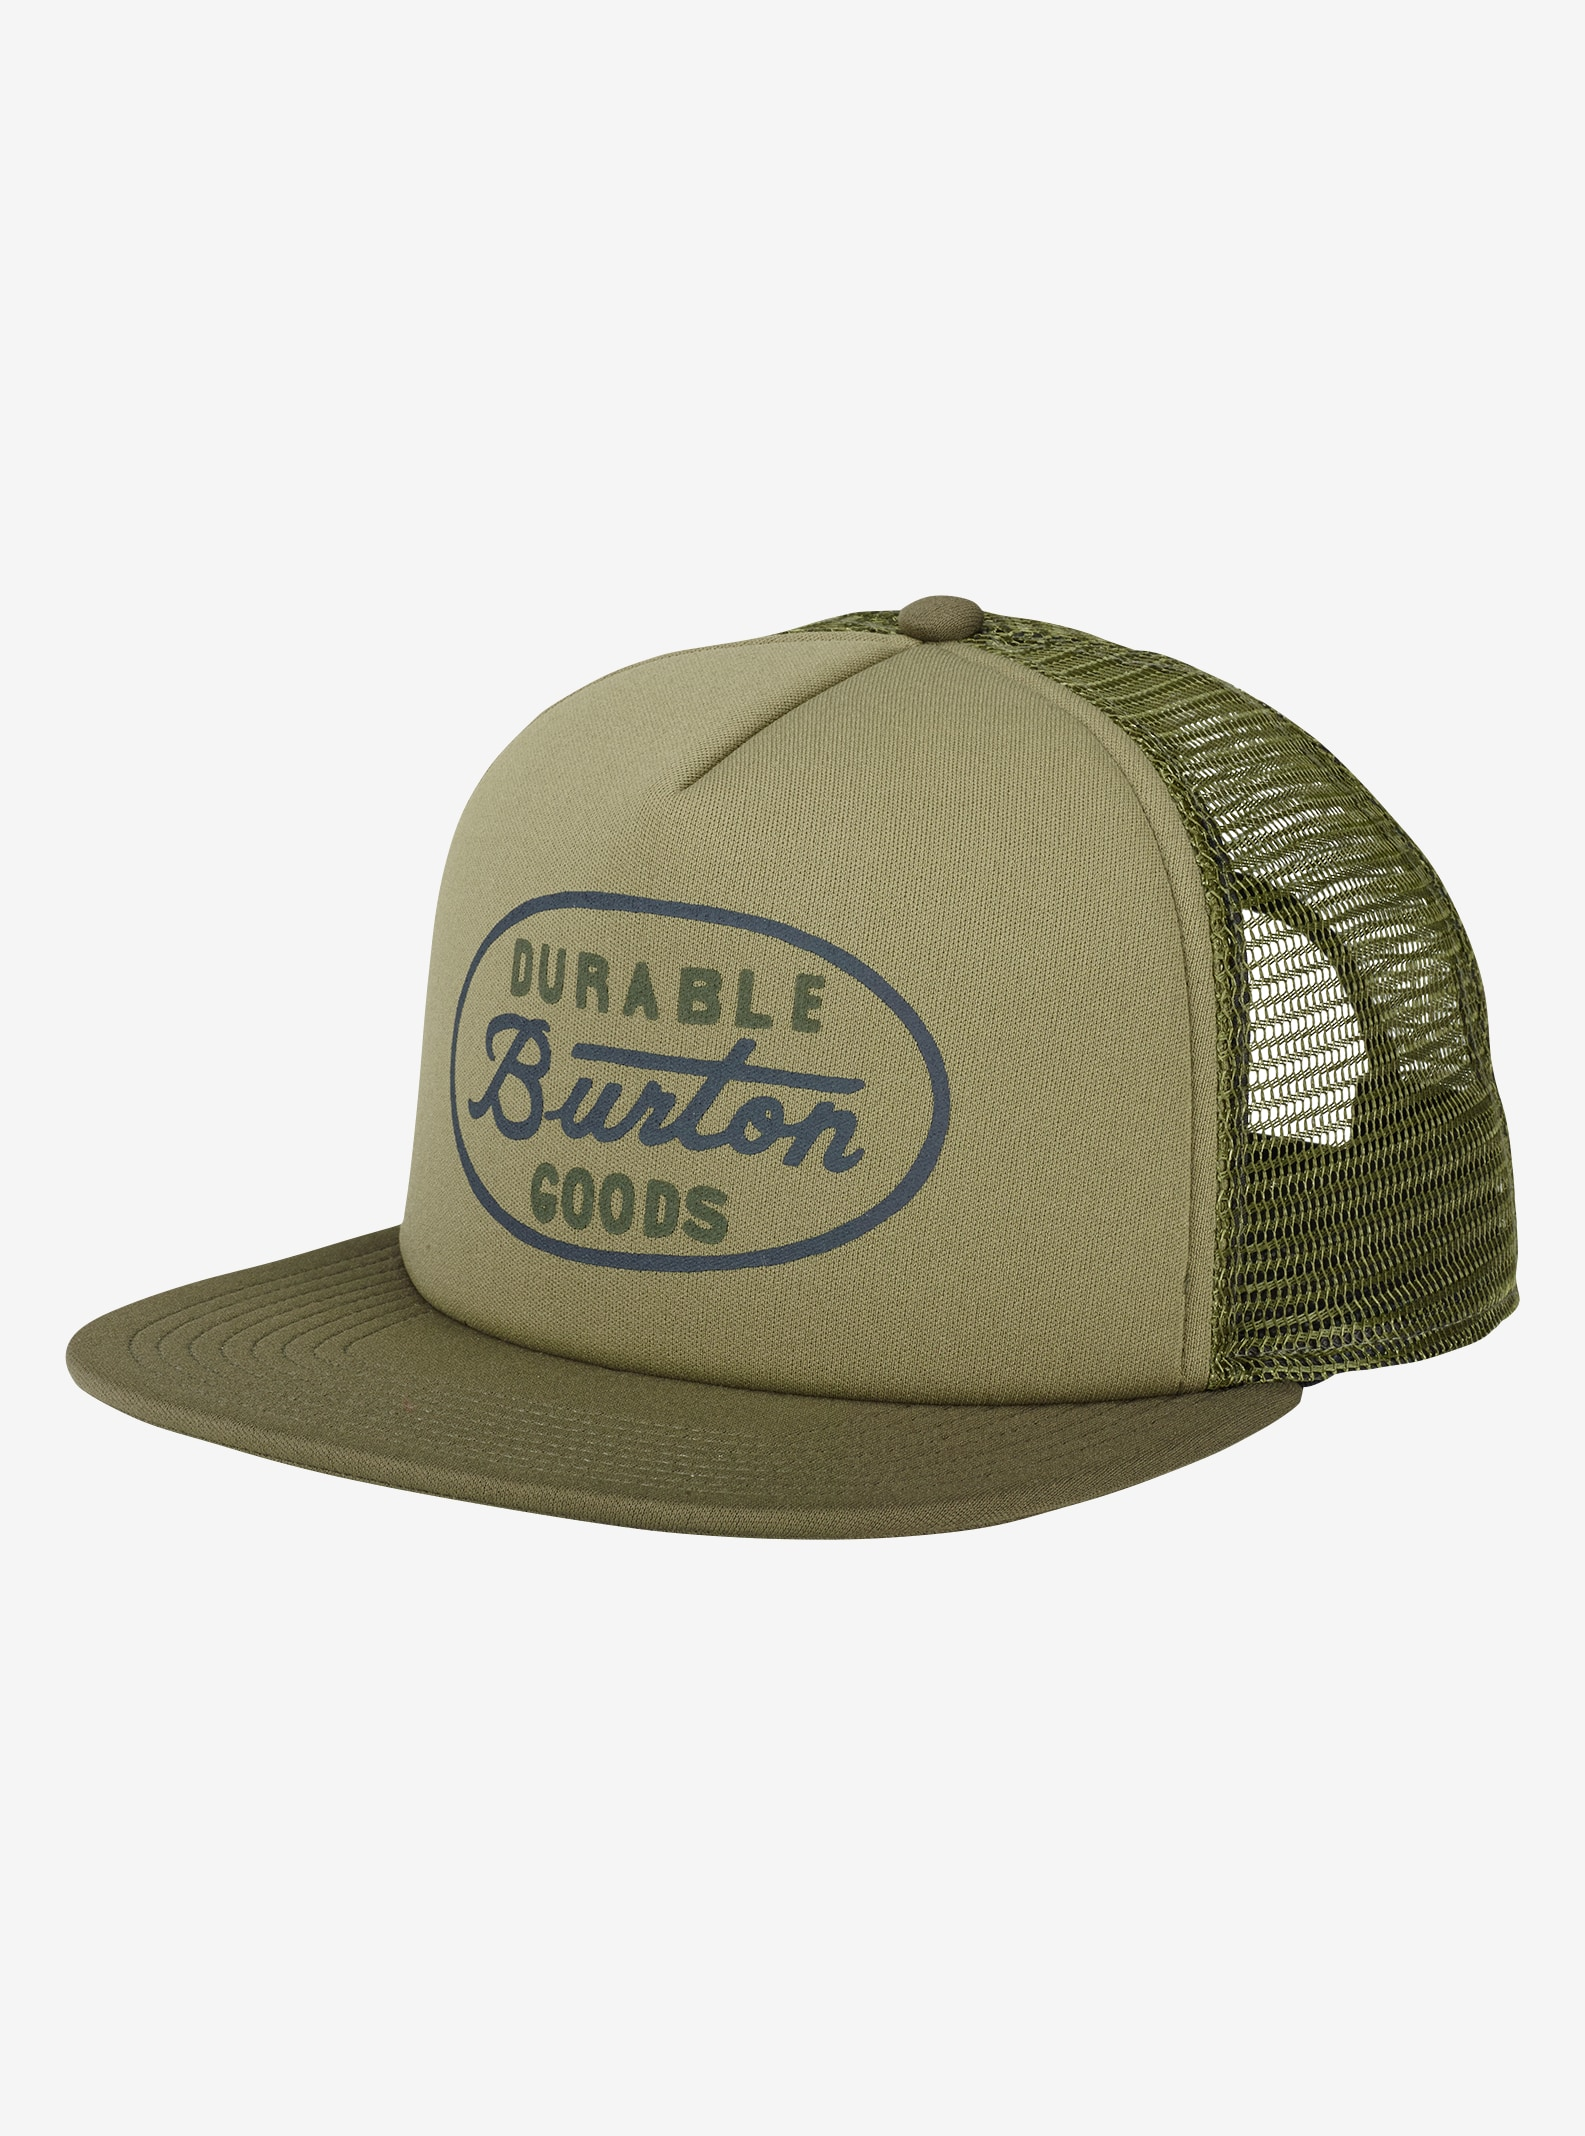 Burton I-80 Hat shown in Dusty Olive